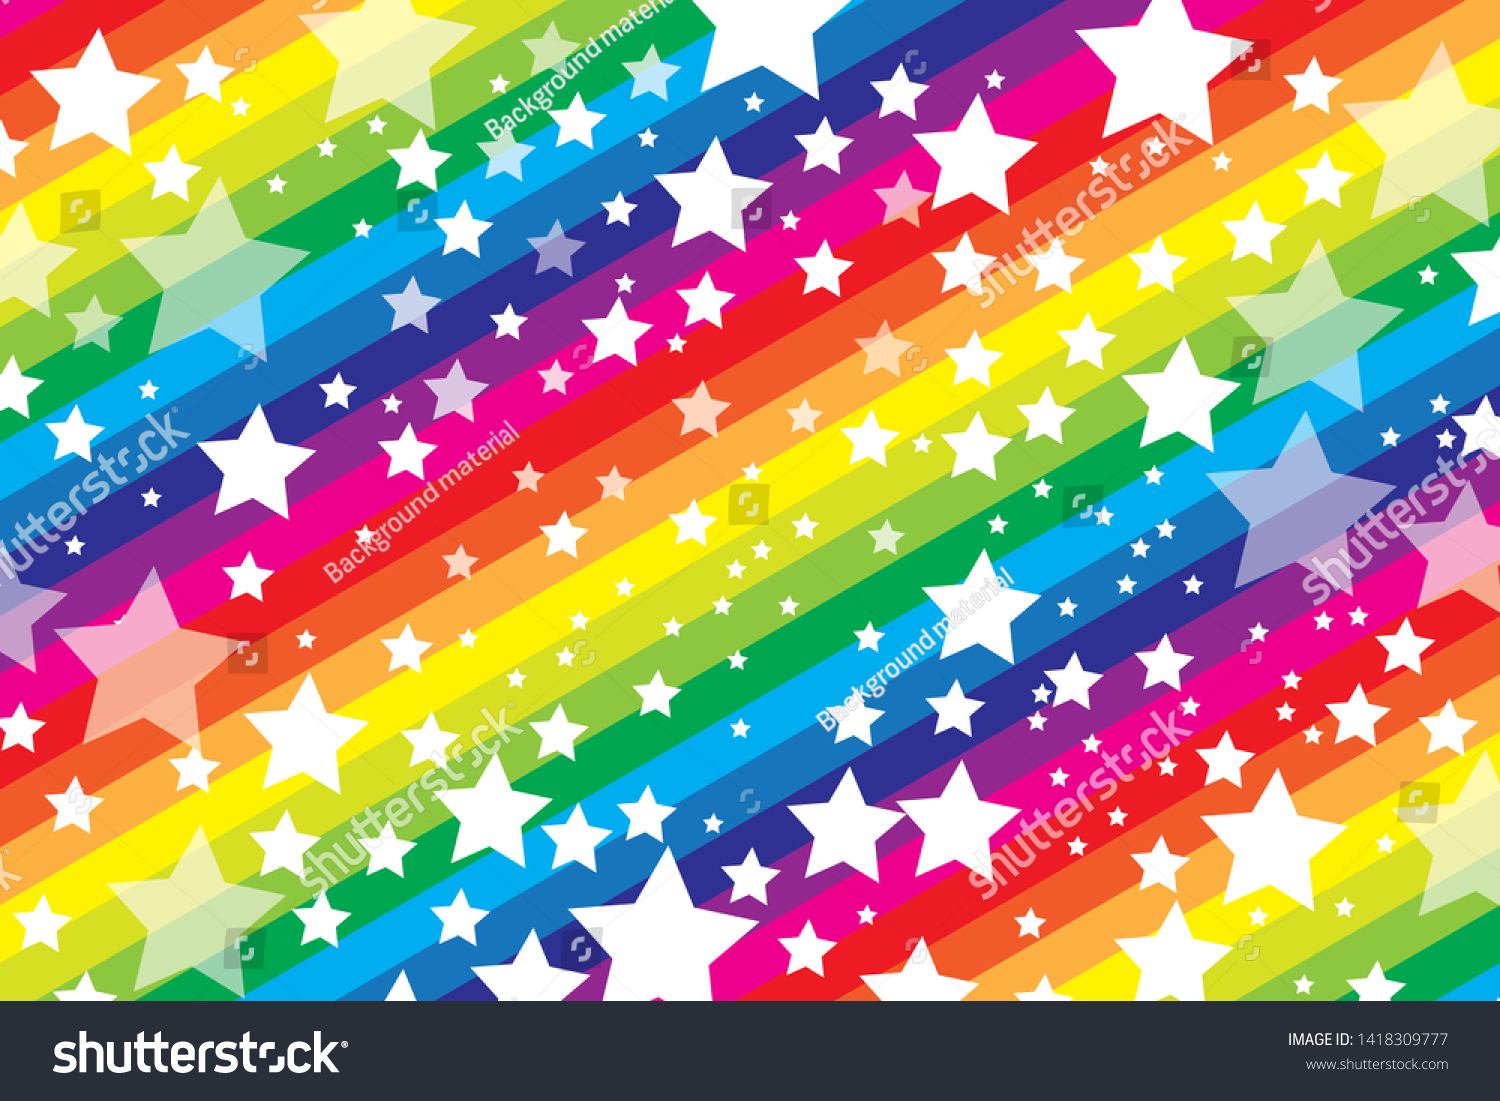 Background Wallpapers Happy Party Images Stardust Stock Vector Royalty Free 1418309777